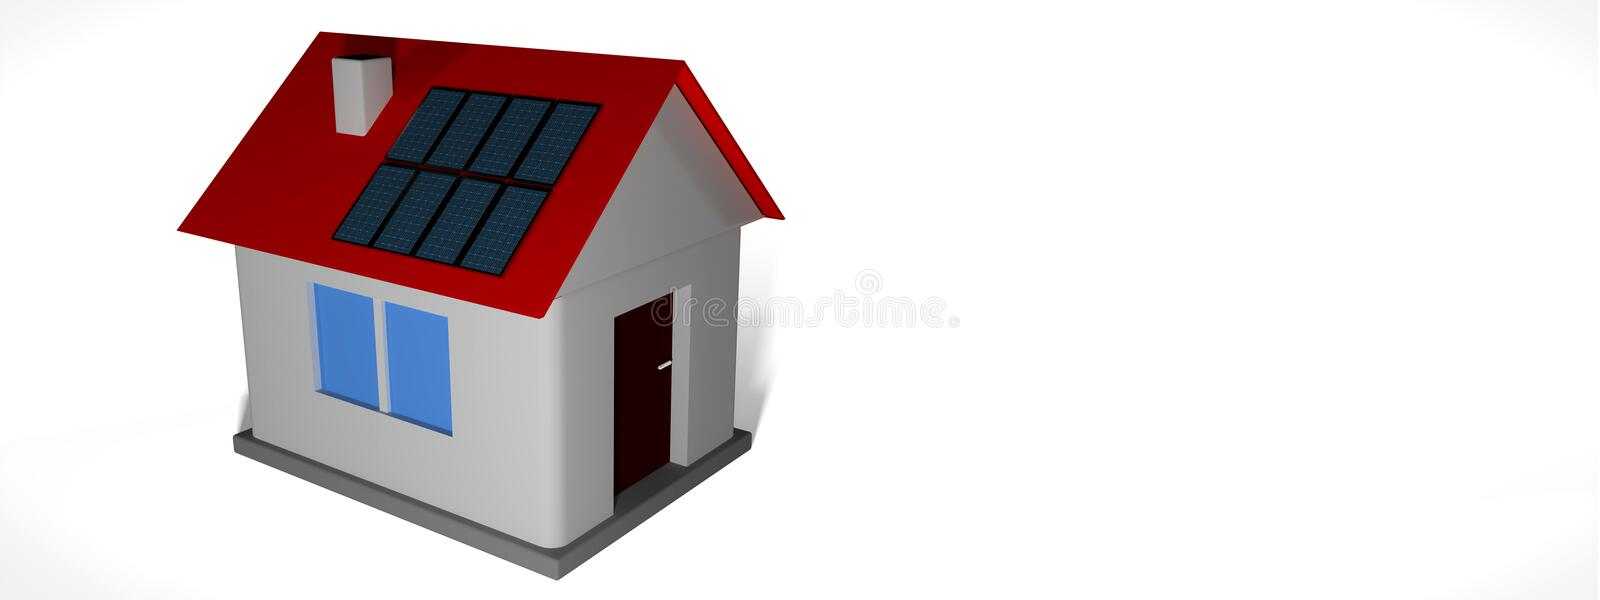 Smal house model with solar panels. Smal house model with solar panels on roof against white background. 3d render illustration. For real estate headers or royalty free illustration